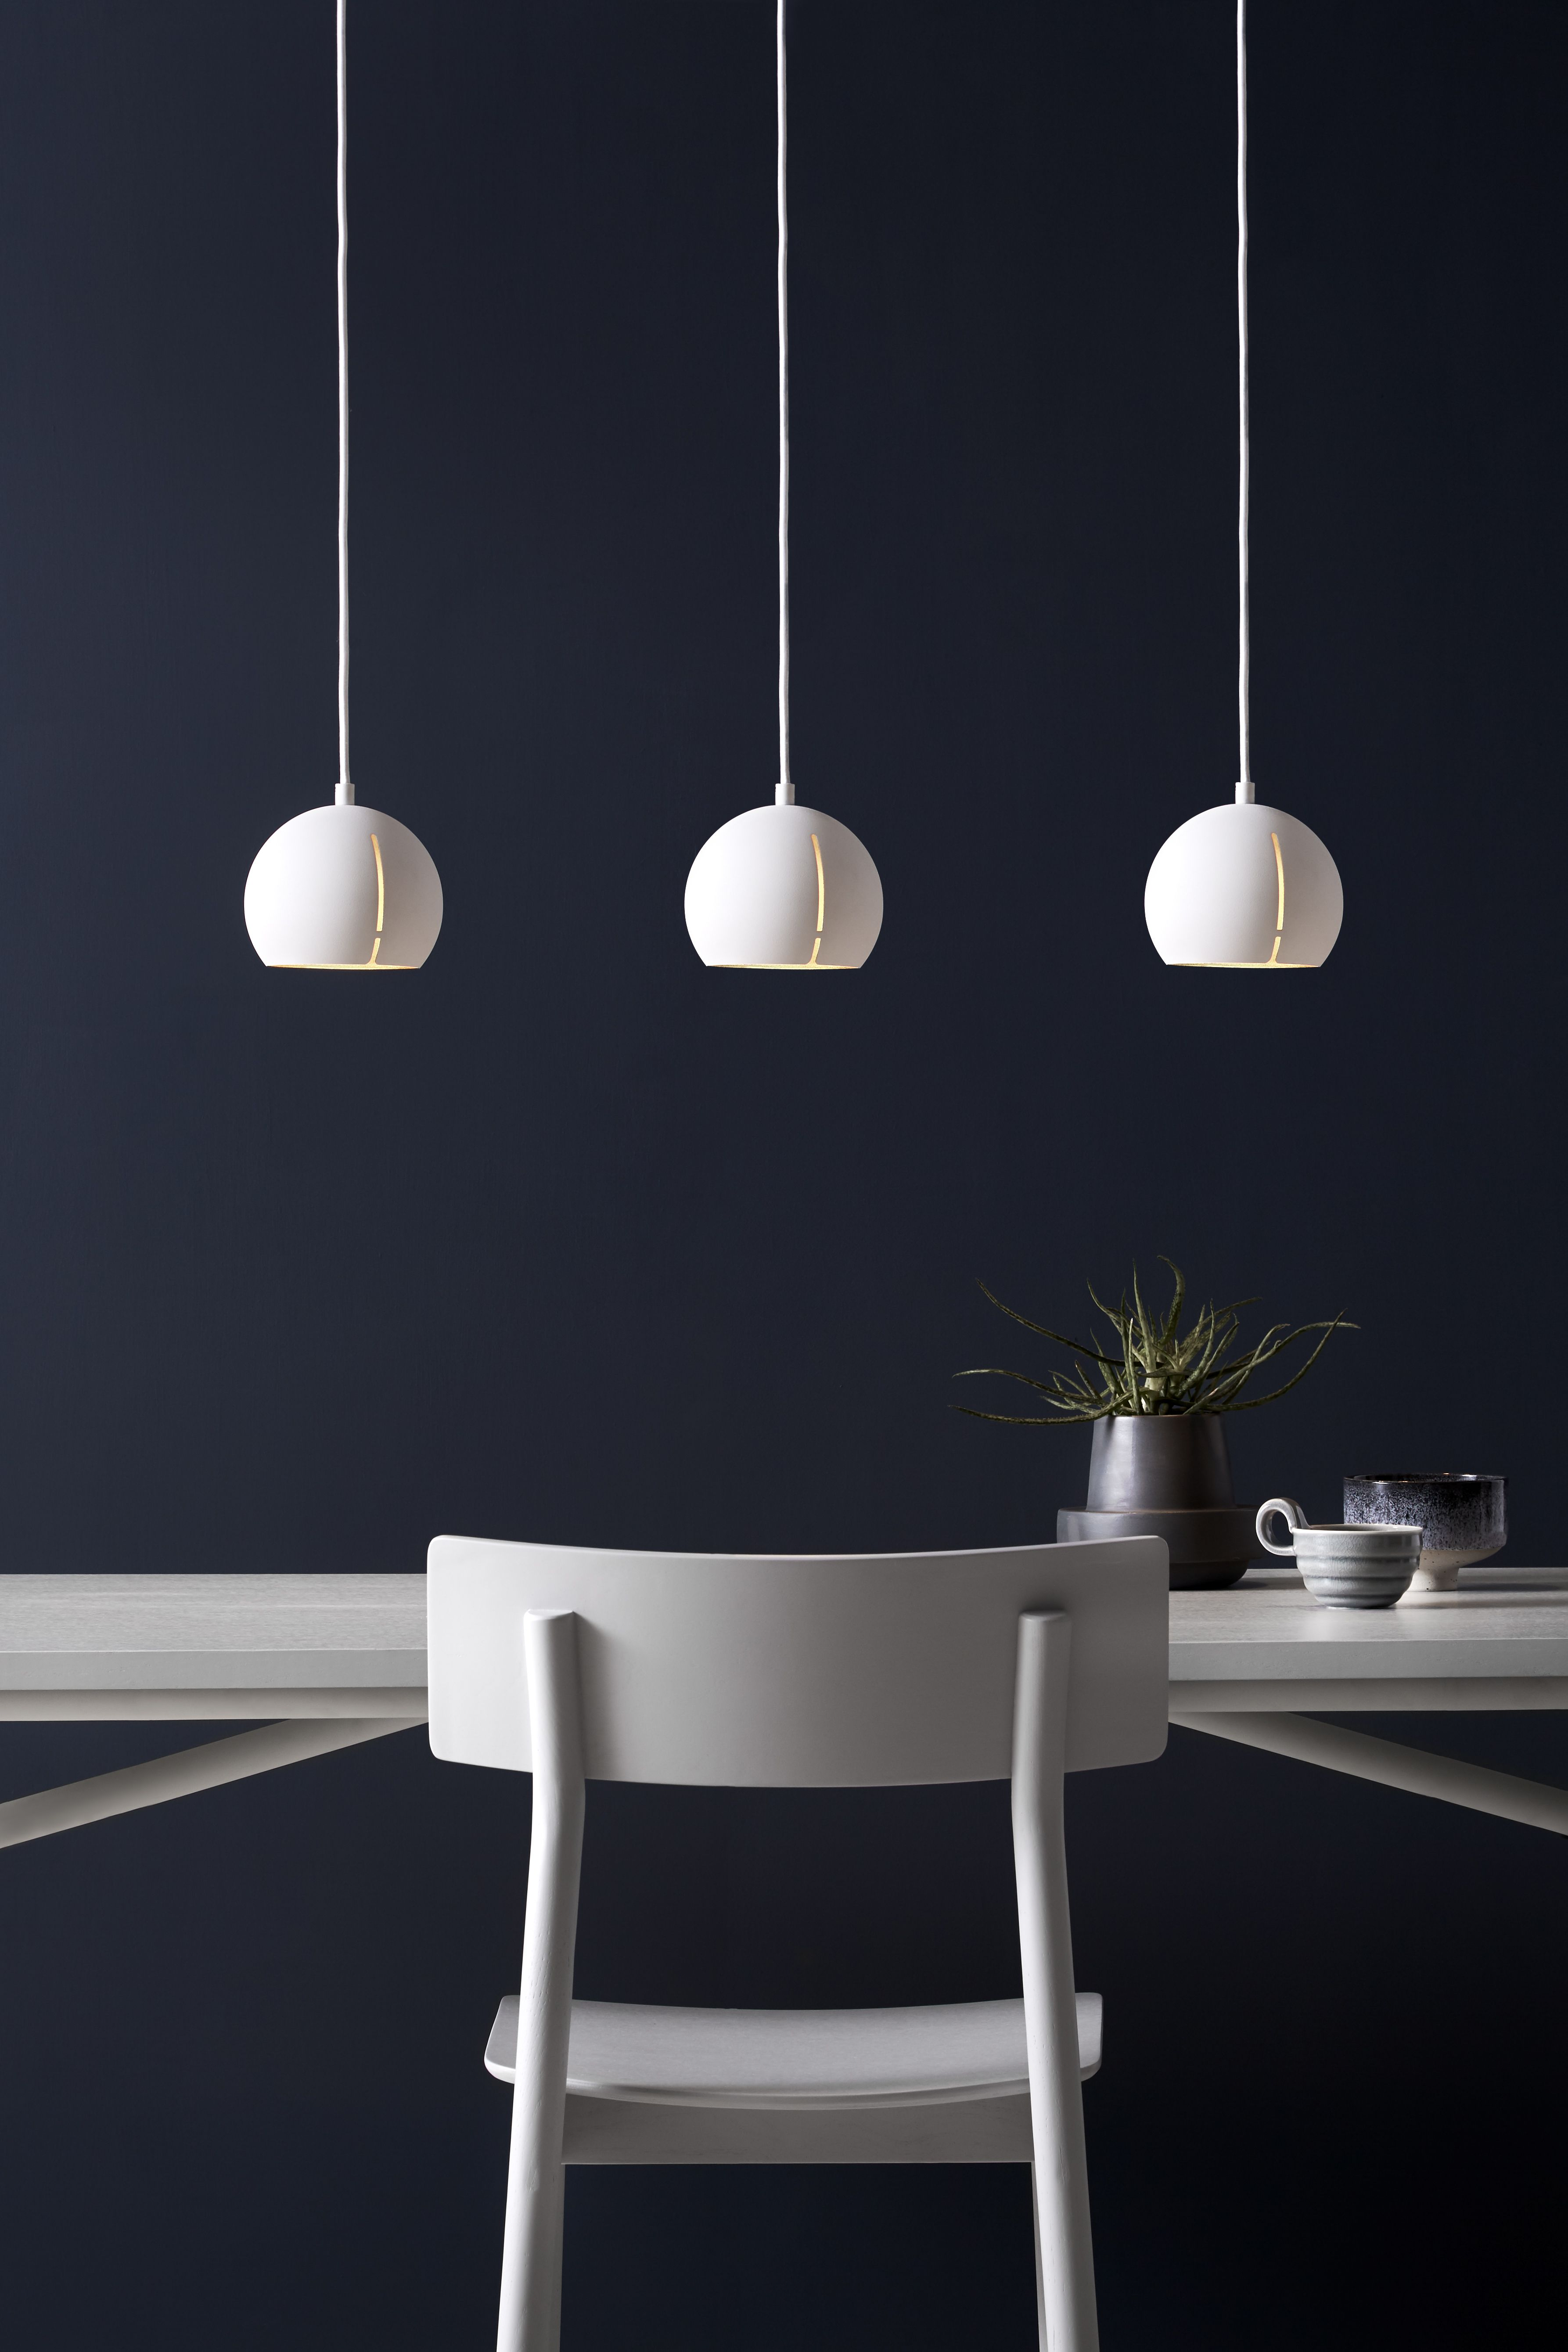 The Gap pendant is a ceiling light that combines a raw